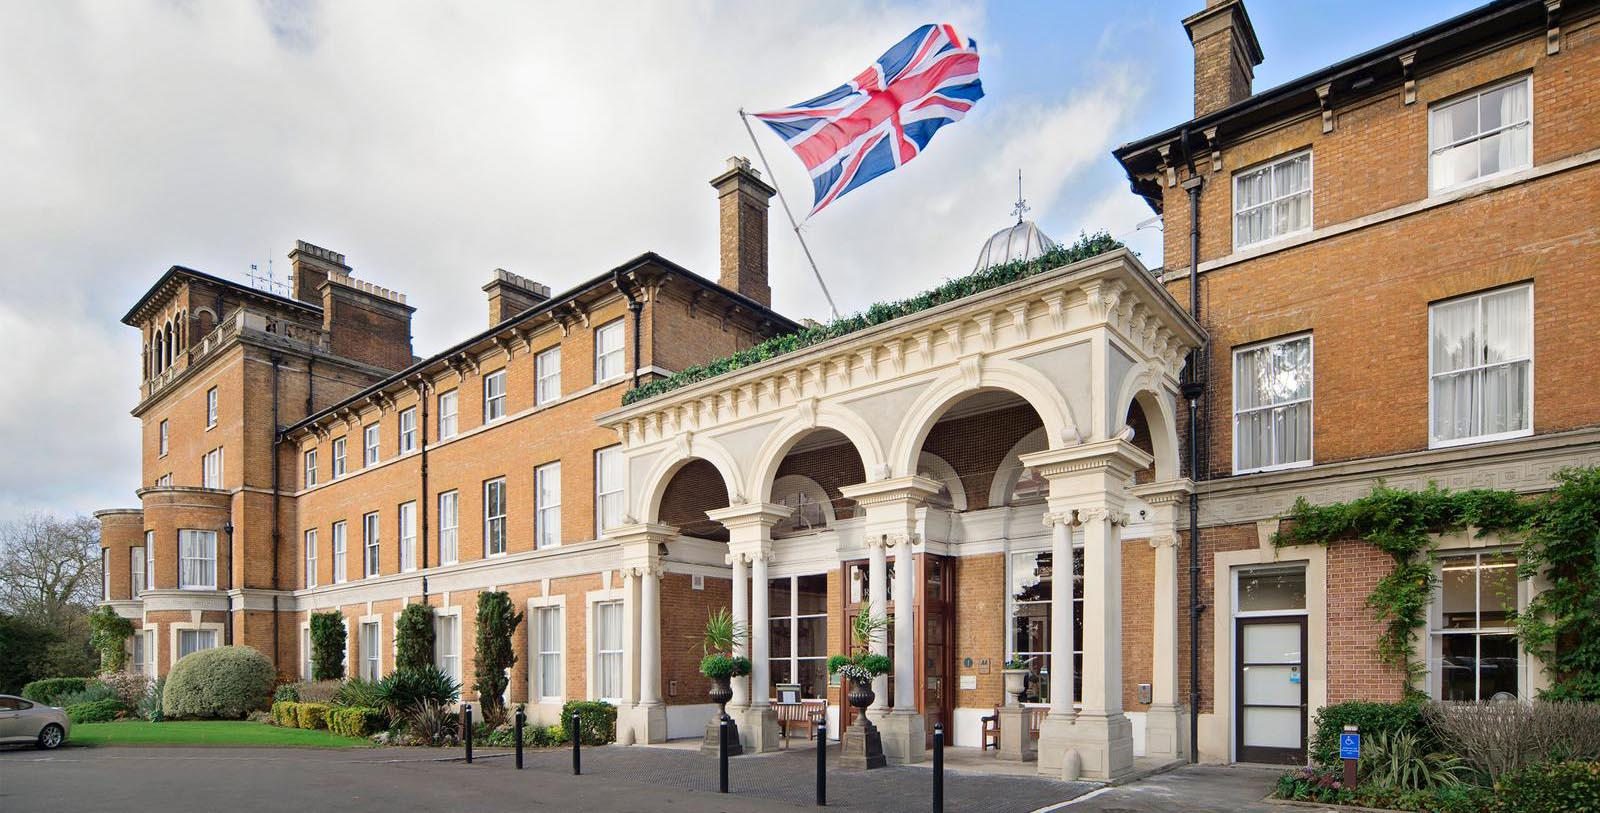 Image of Hotel Entrance Oatlands Park Hotel, 1856, Member of Historic Hotels Worldwide, in Weybridge, England, Overview